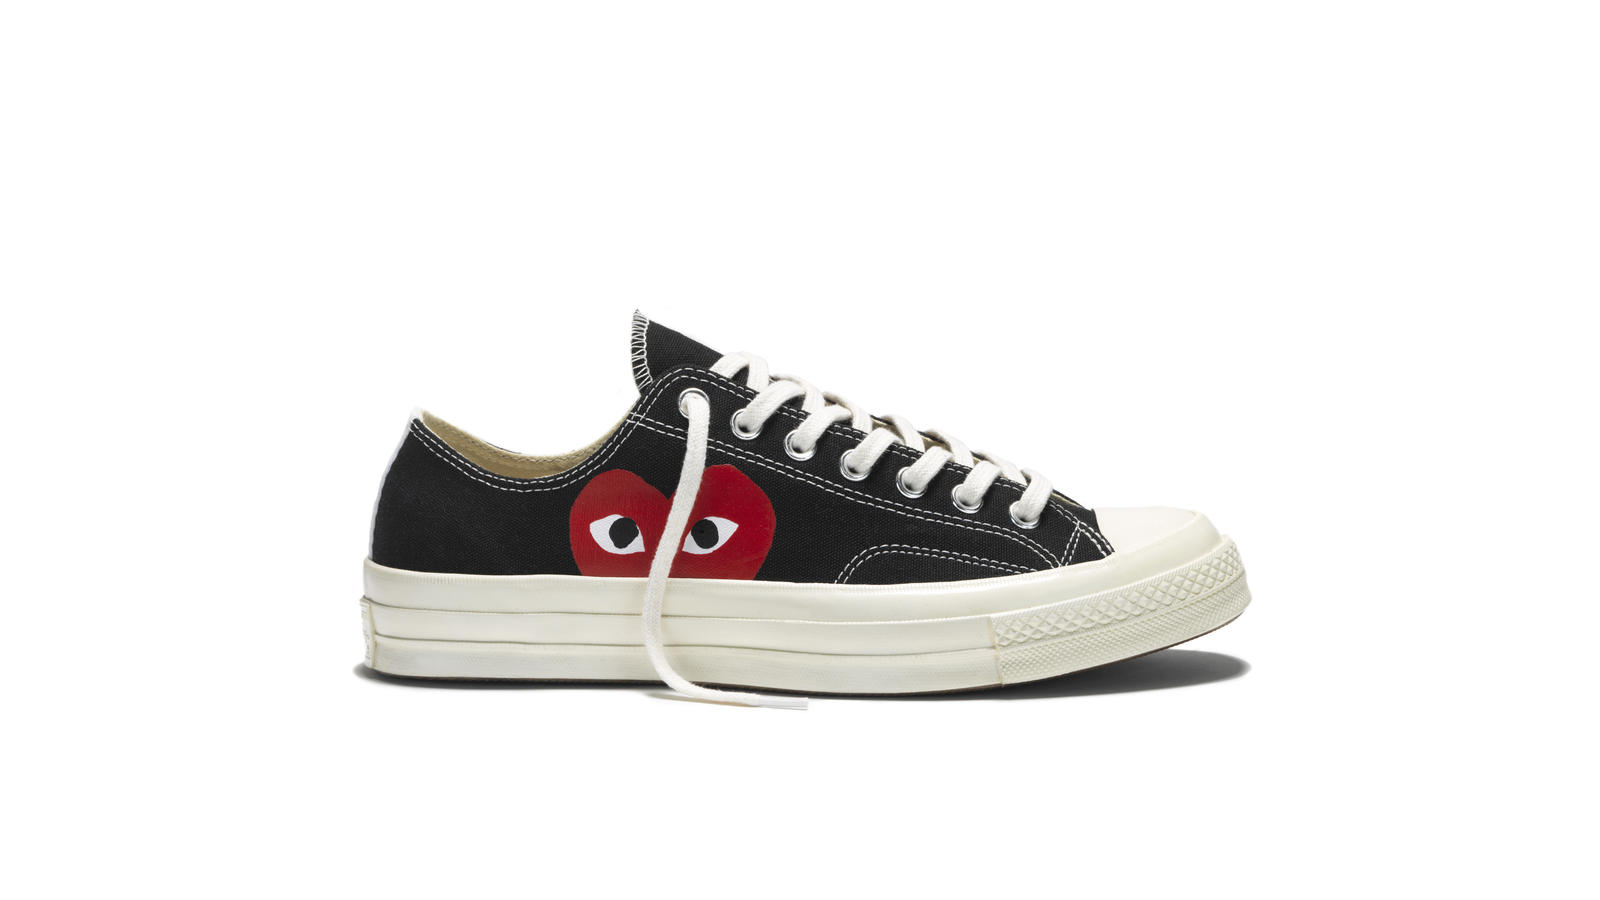 CONVERSE AND COMME DES GARCONS ANNOUNCE NEW PLAY